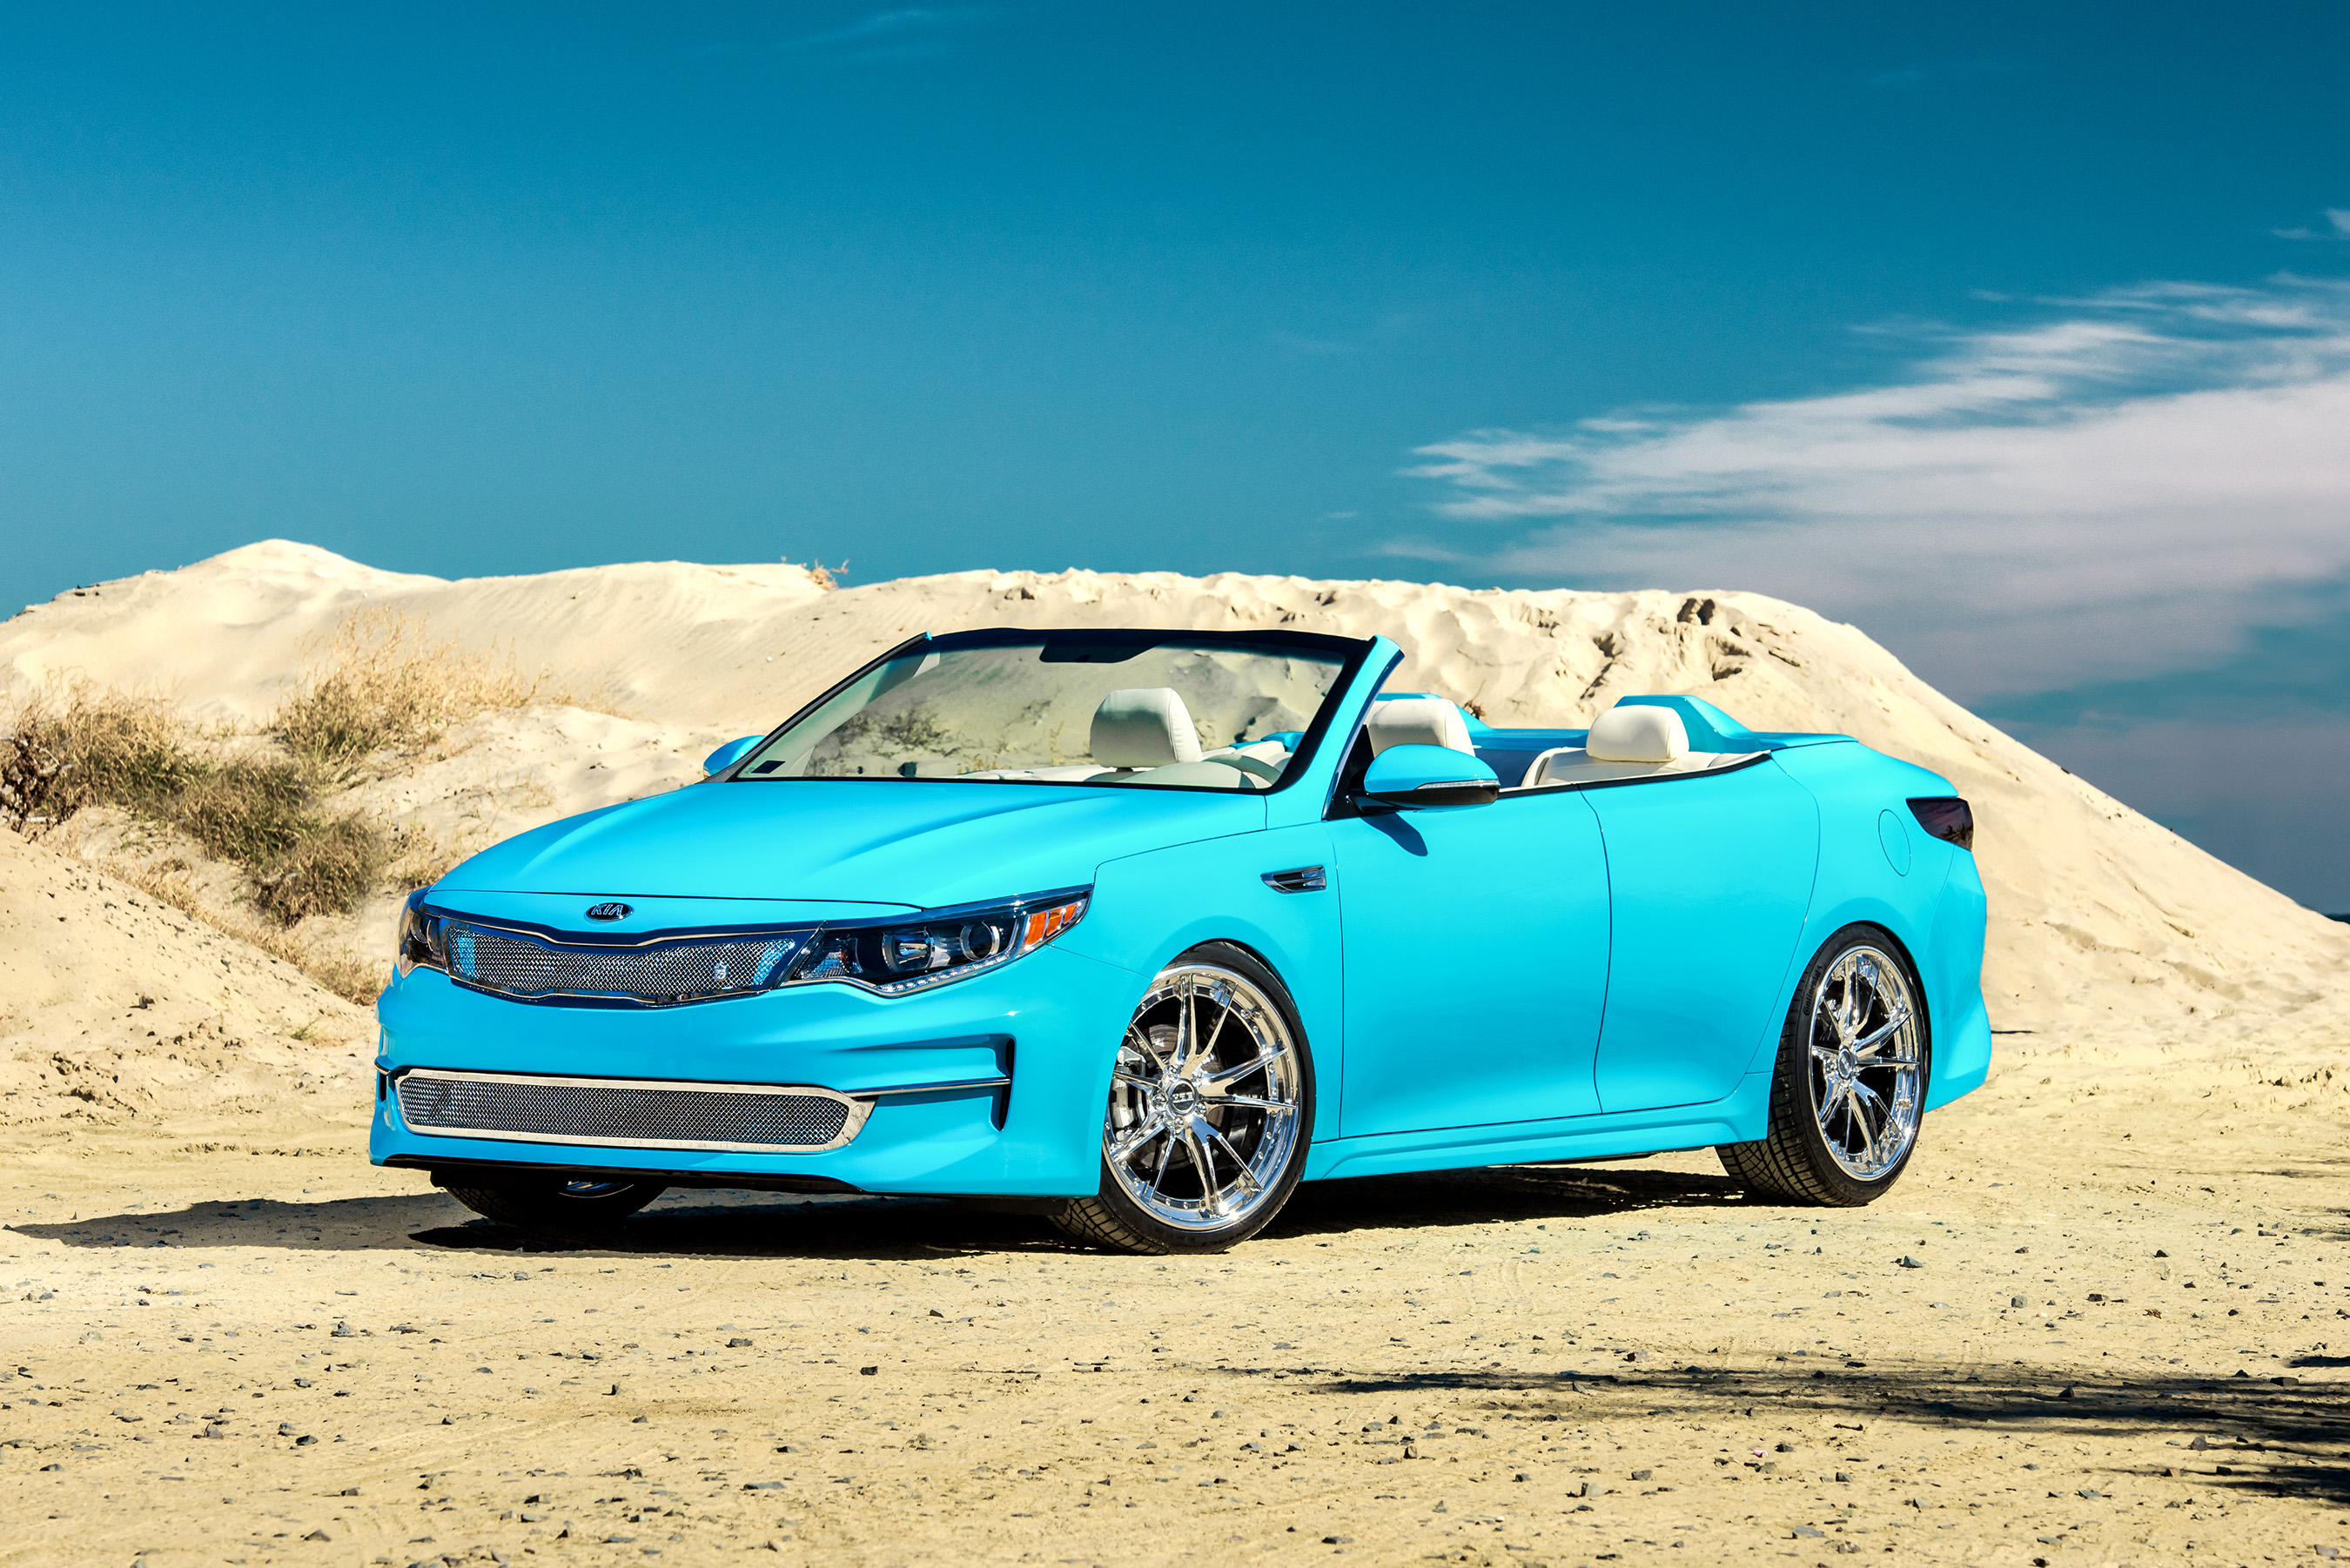 The A1A Optima takes inspiration from Florida's iconic byway by letting in the sunshine, making it the perfect companion to explore the state's rich history and subtropical splendor.